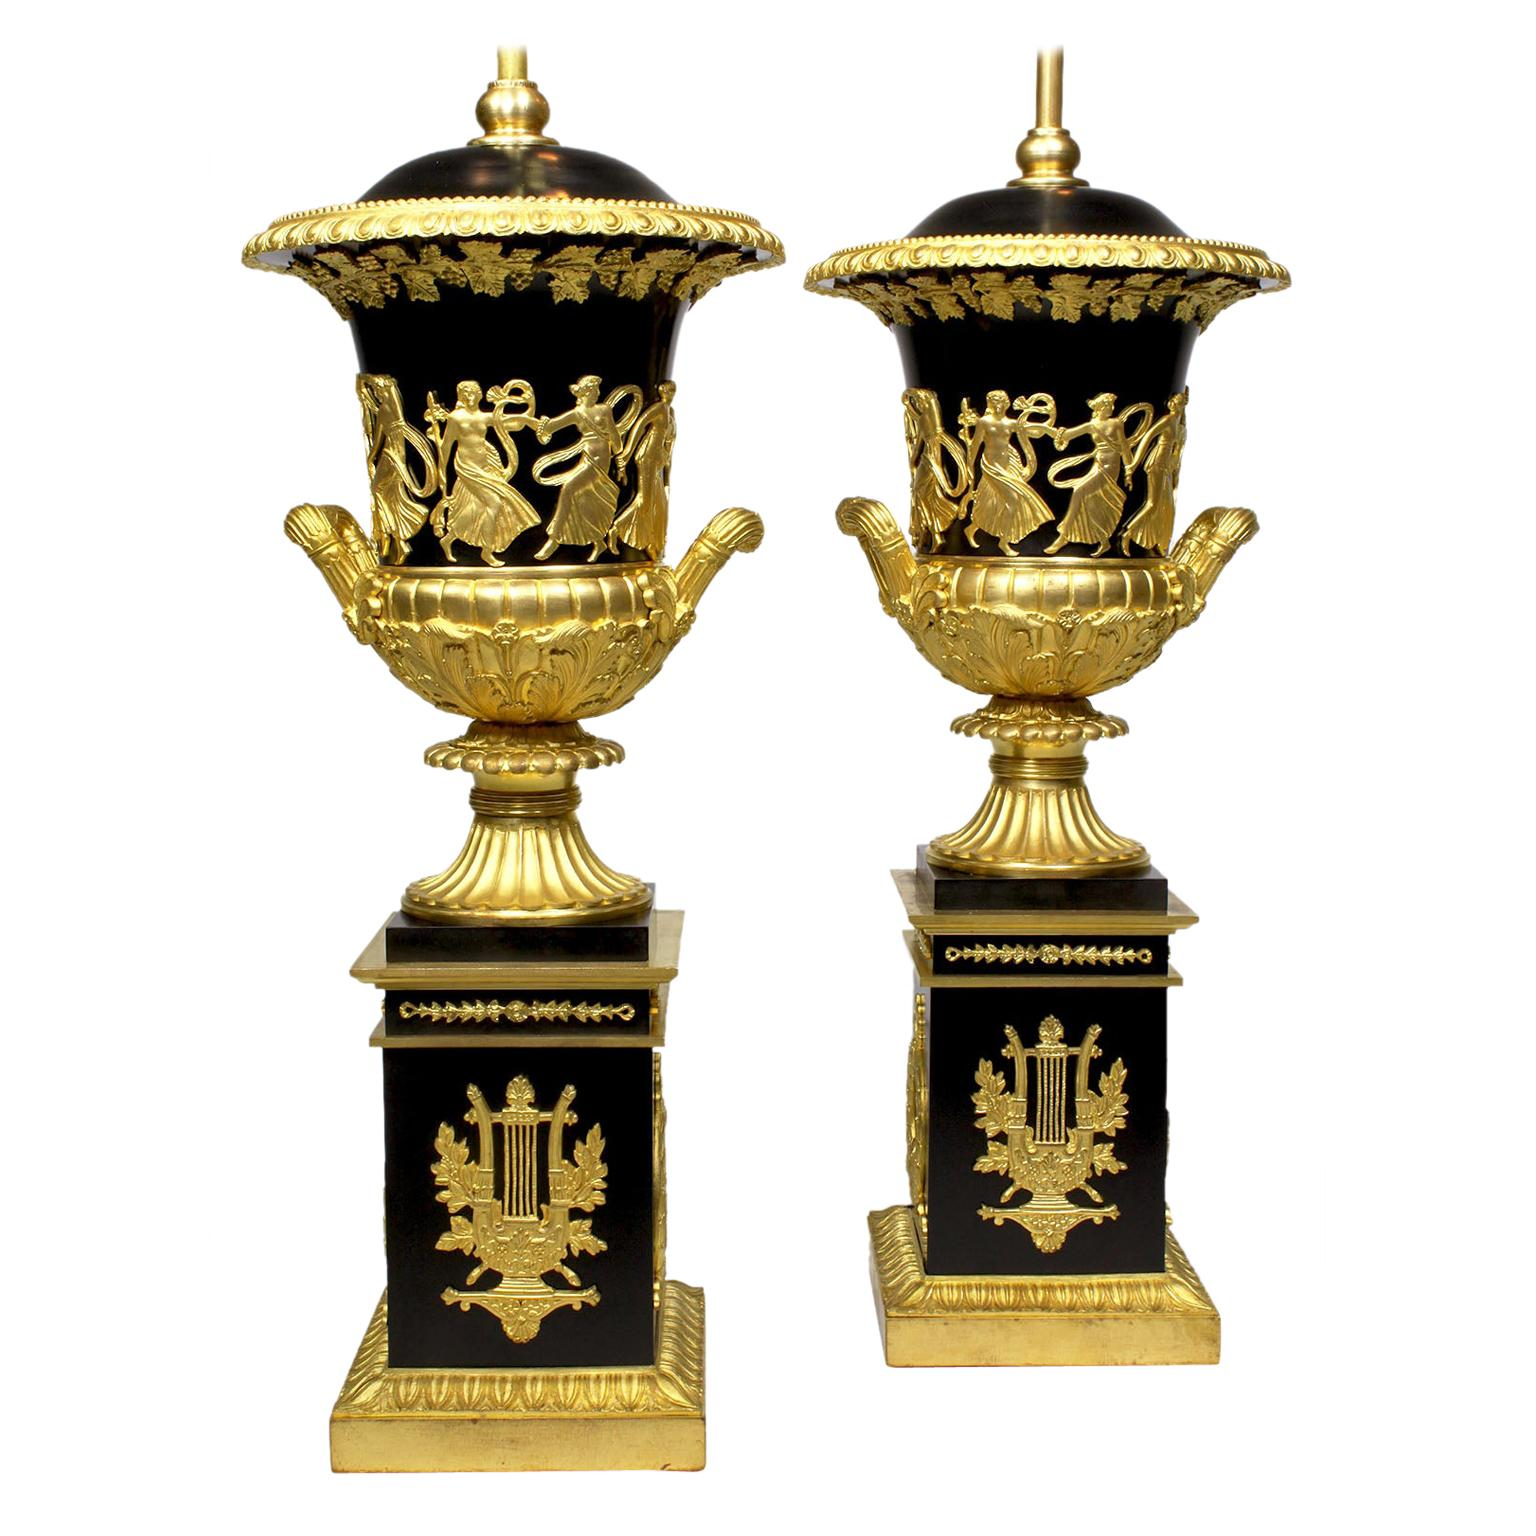 Pair French 19th Century Napoleon III Empire Style Gilt-Bronze Urn Table Lamps